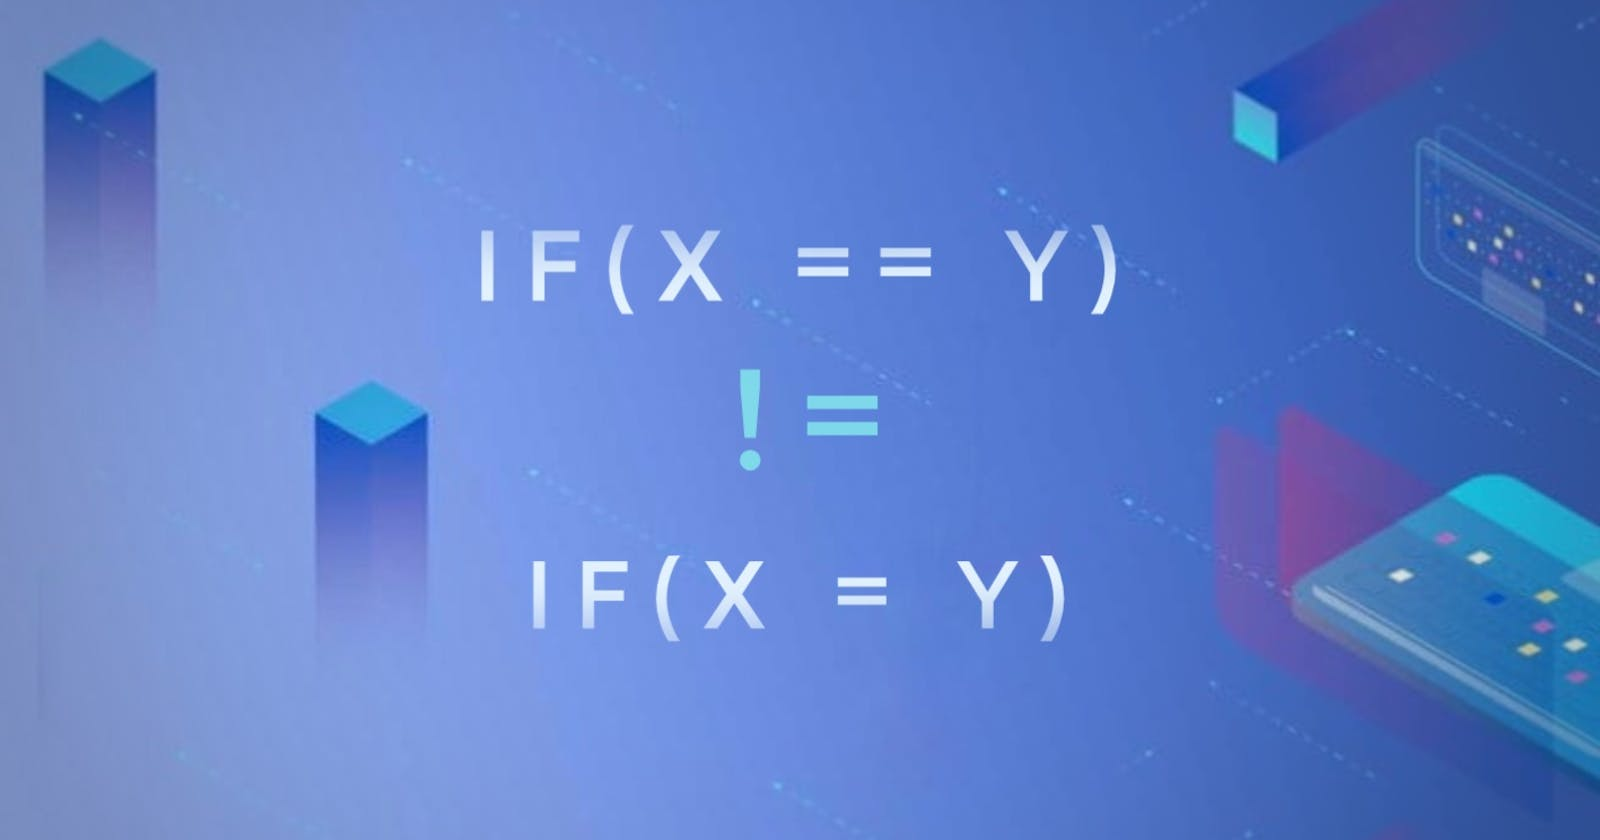 Know more about if(x=y)